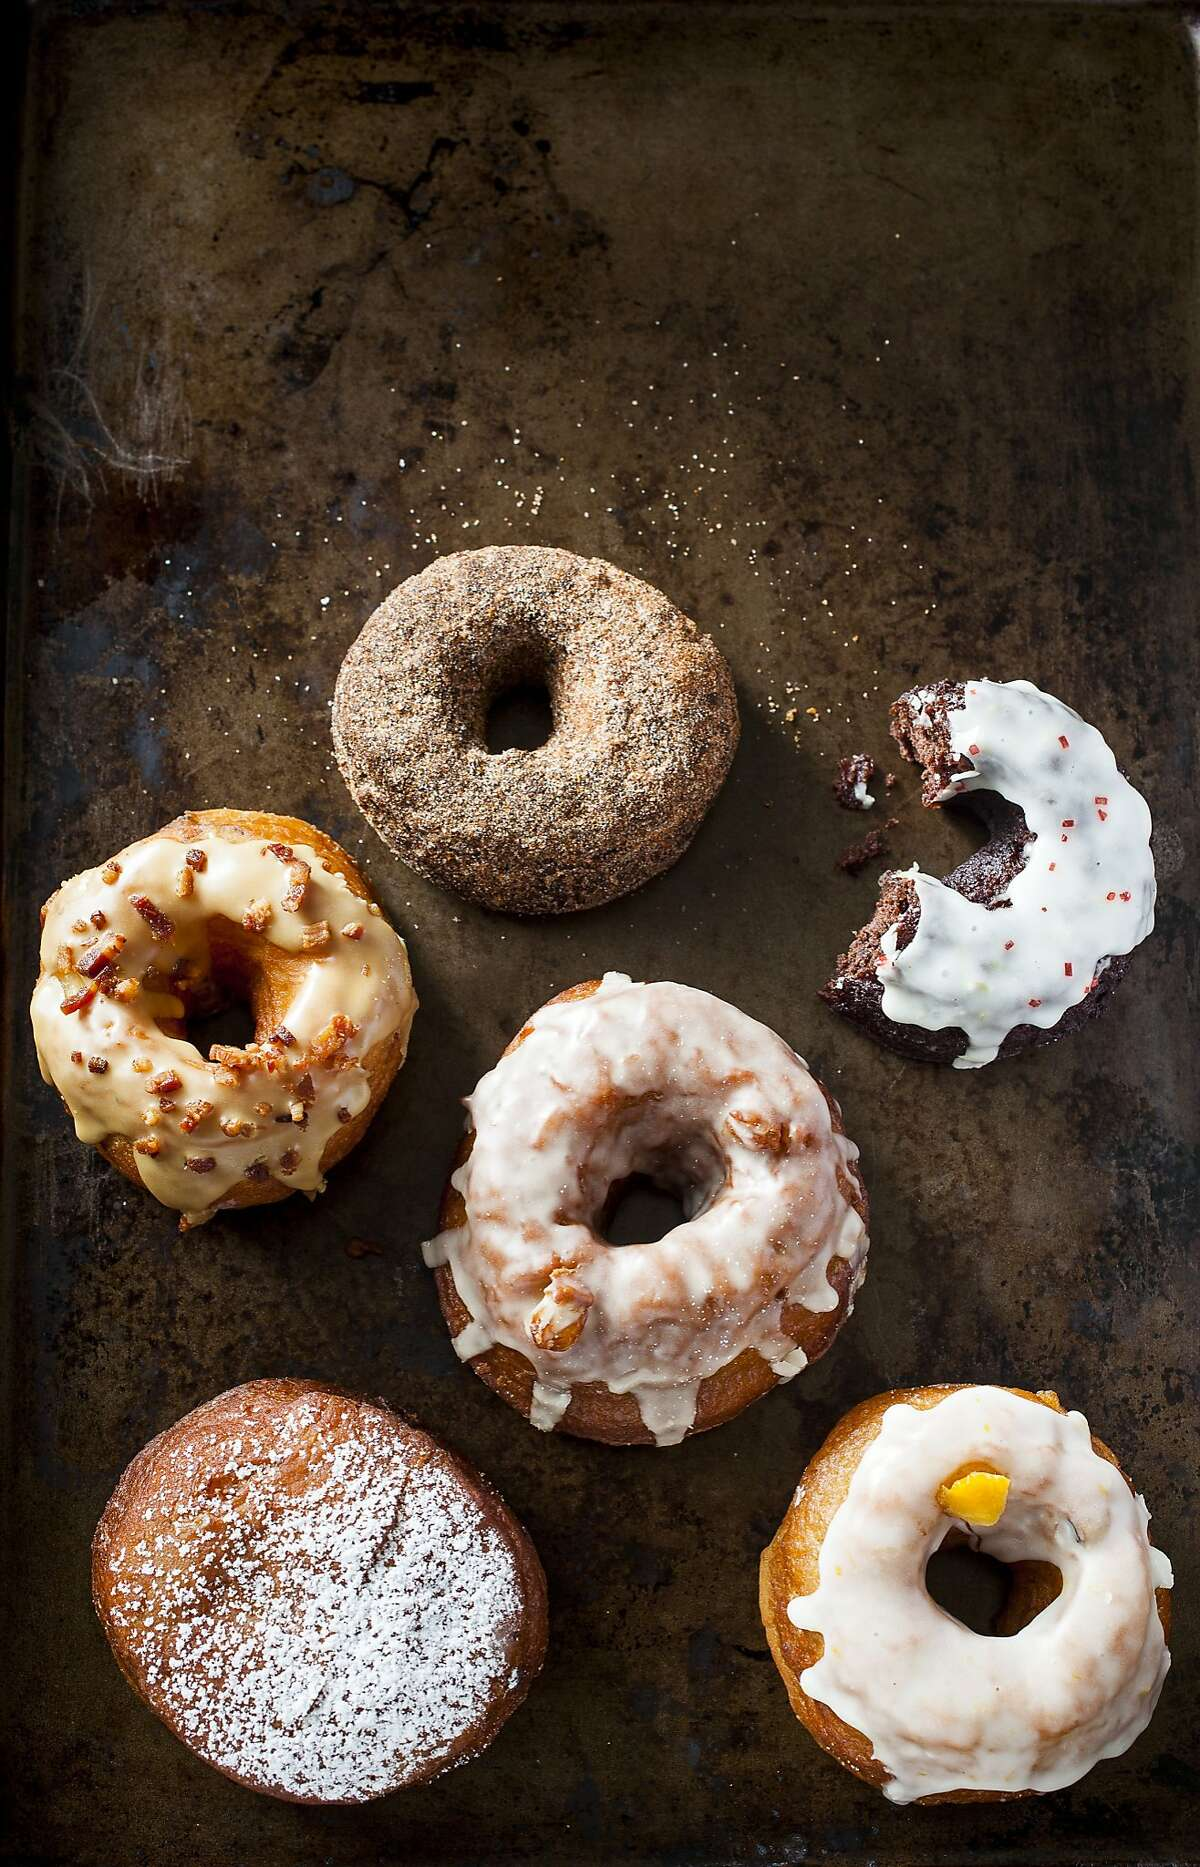 Donuts from Dynamo Donuts